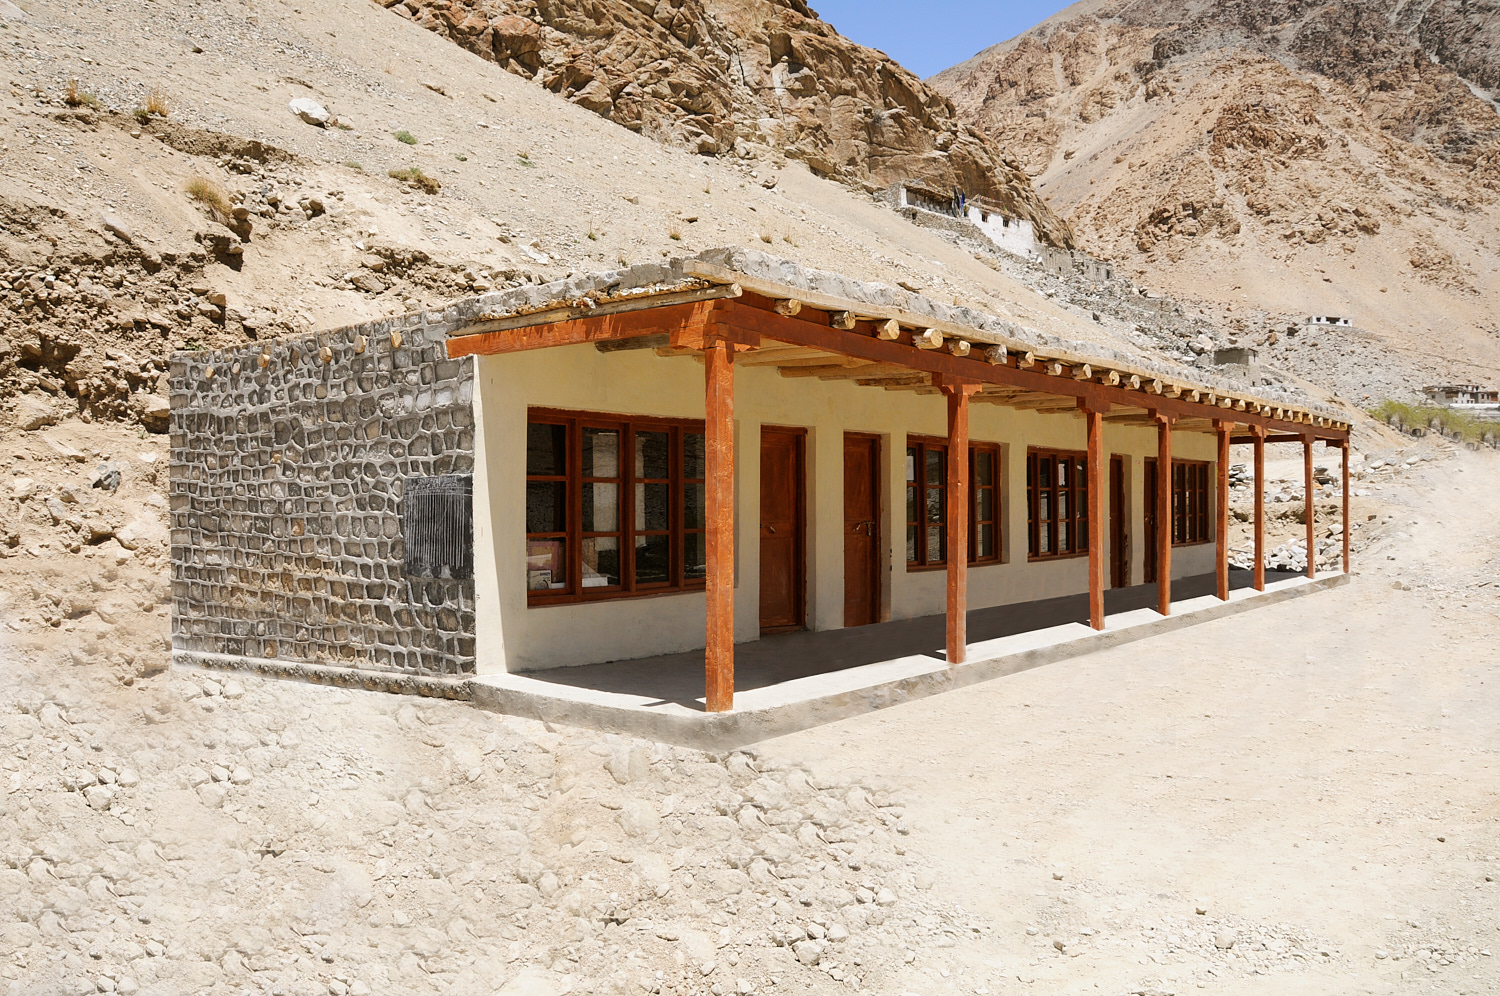 Domka Gongma Primary and Middle School, Ladakh - Funded by contributors to the Ladakh Disaster Fund